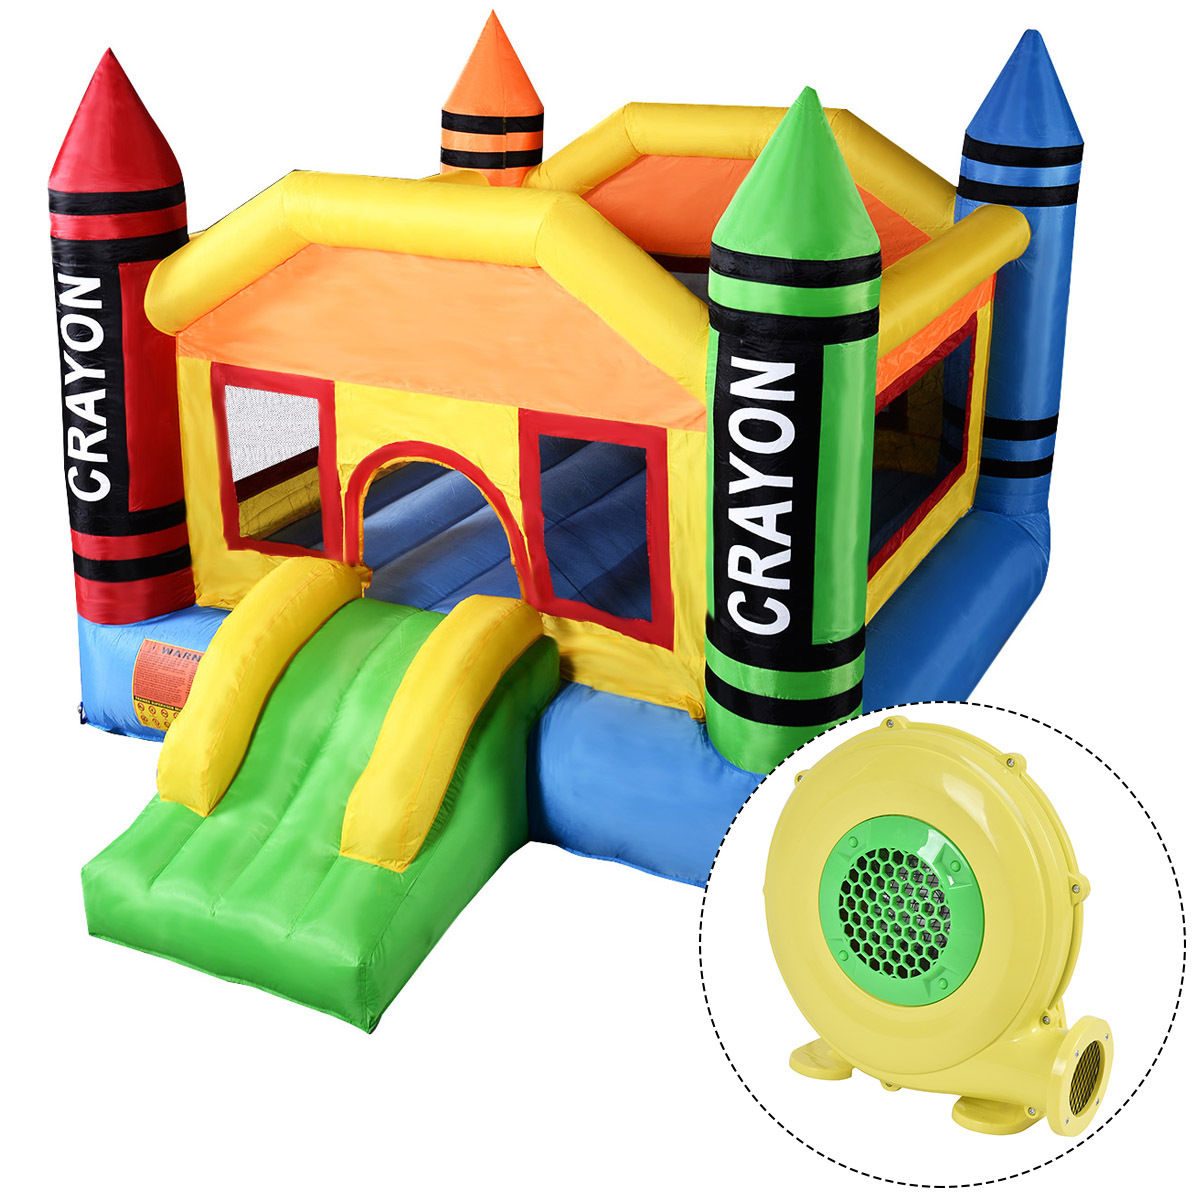 Gymax Inflatable Crayon Bounce House Castle Jumper Moonwalk Bouncer with 480W Blower